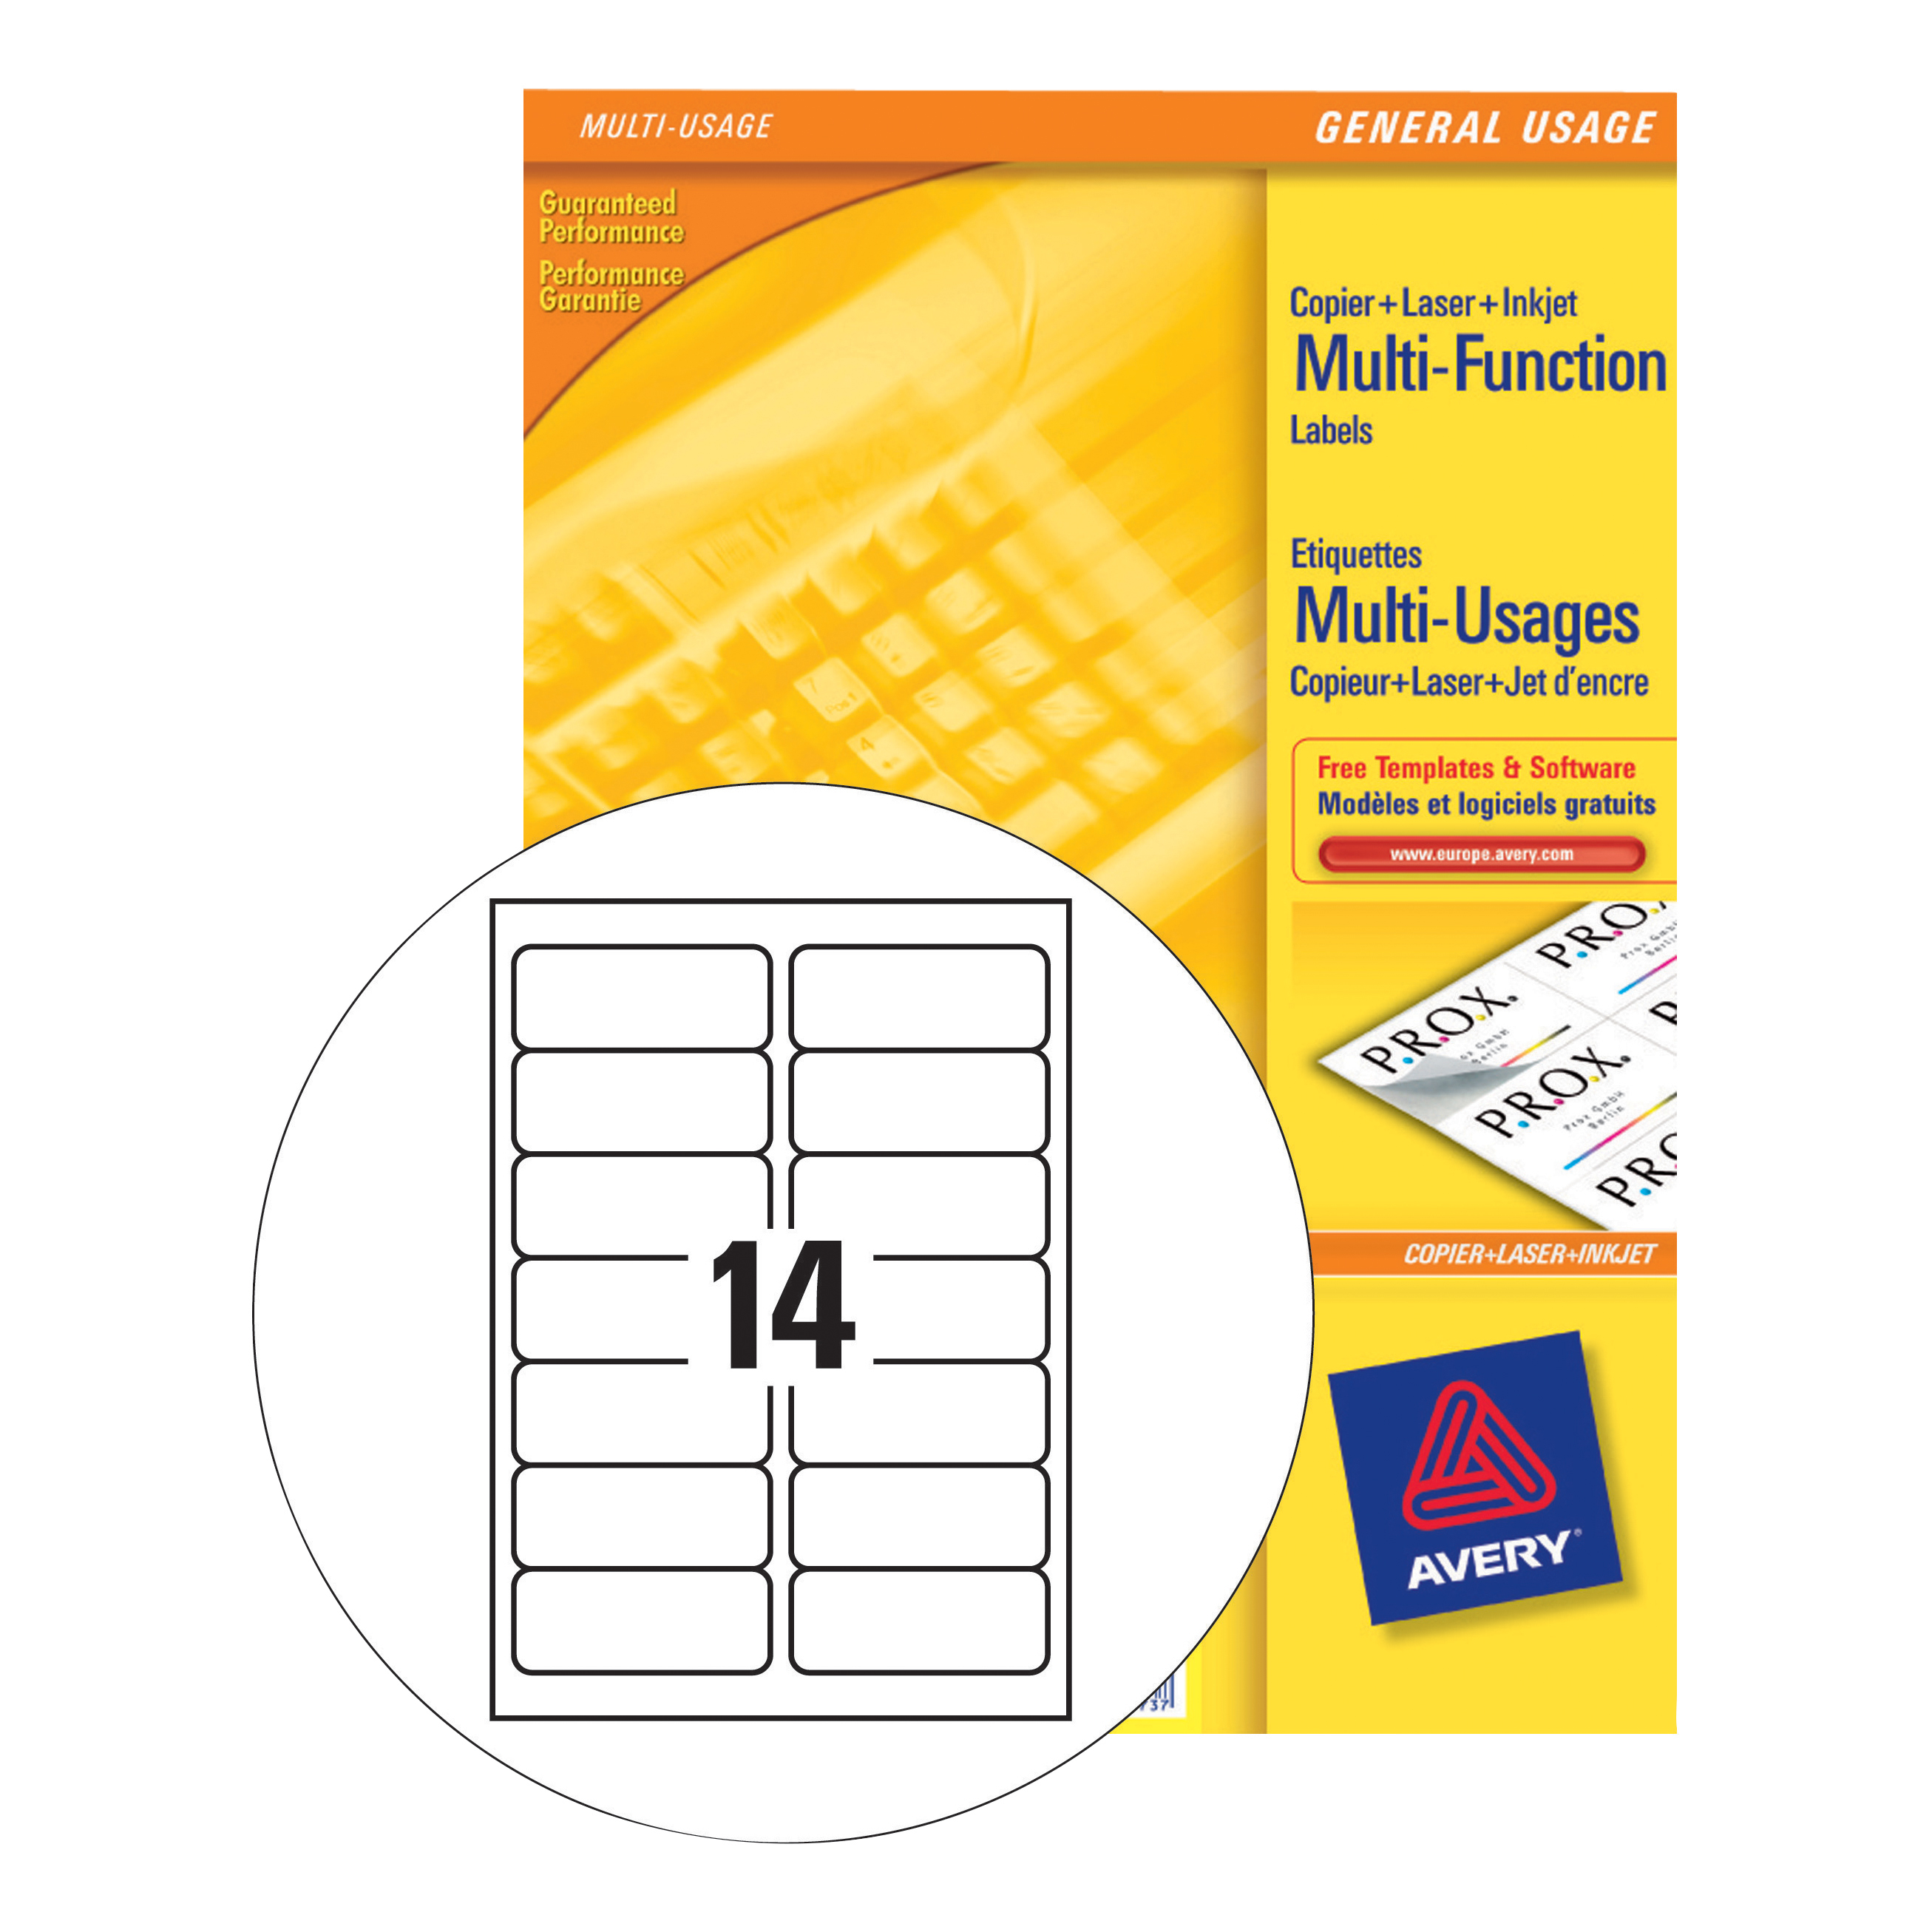 Address Avery Multipurpose Labels Laser Copier Inkjet 14 per Sheet 105x42.3mm White Ref 3653 1400 Labels